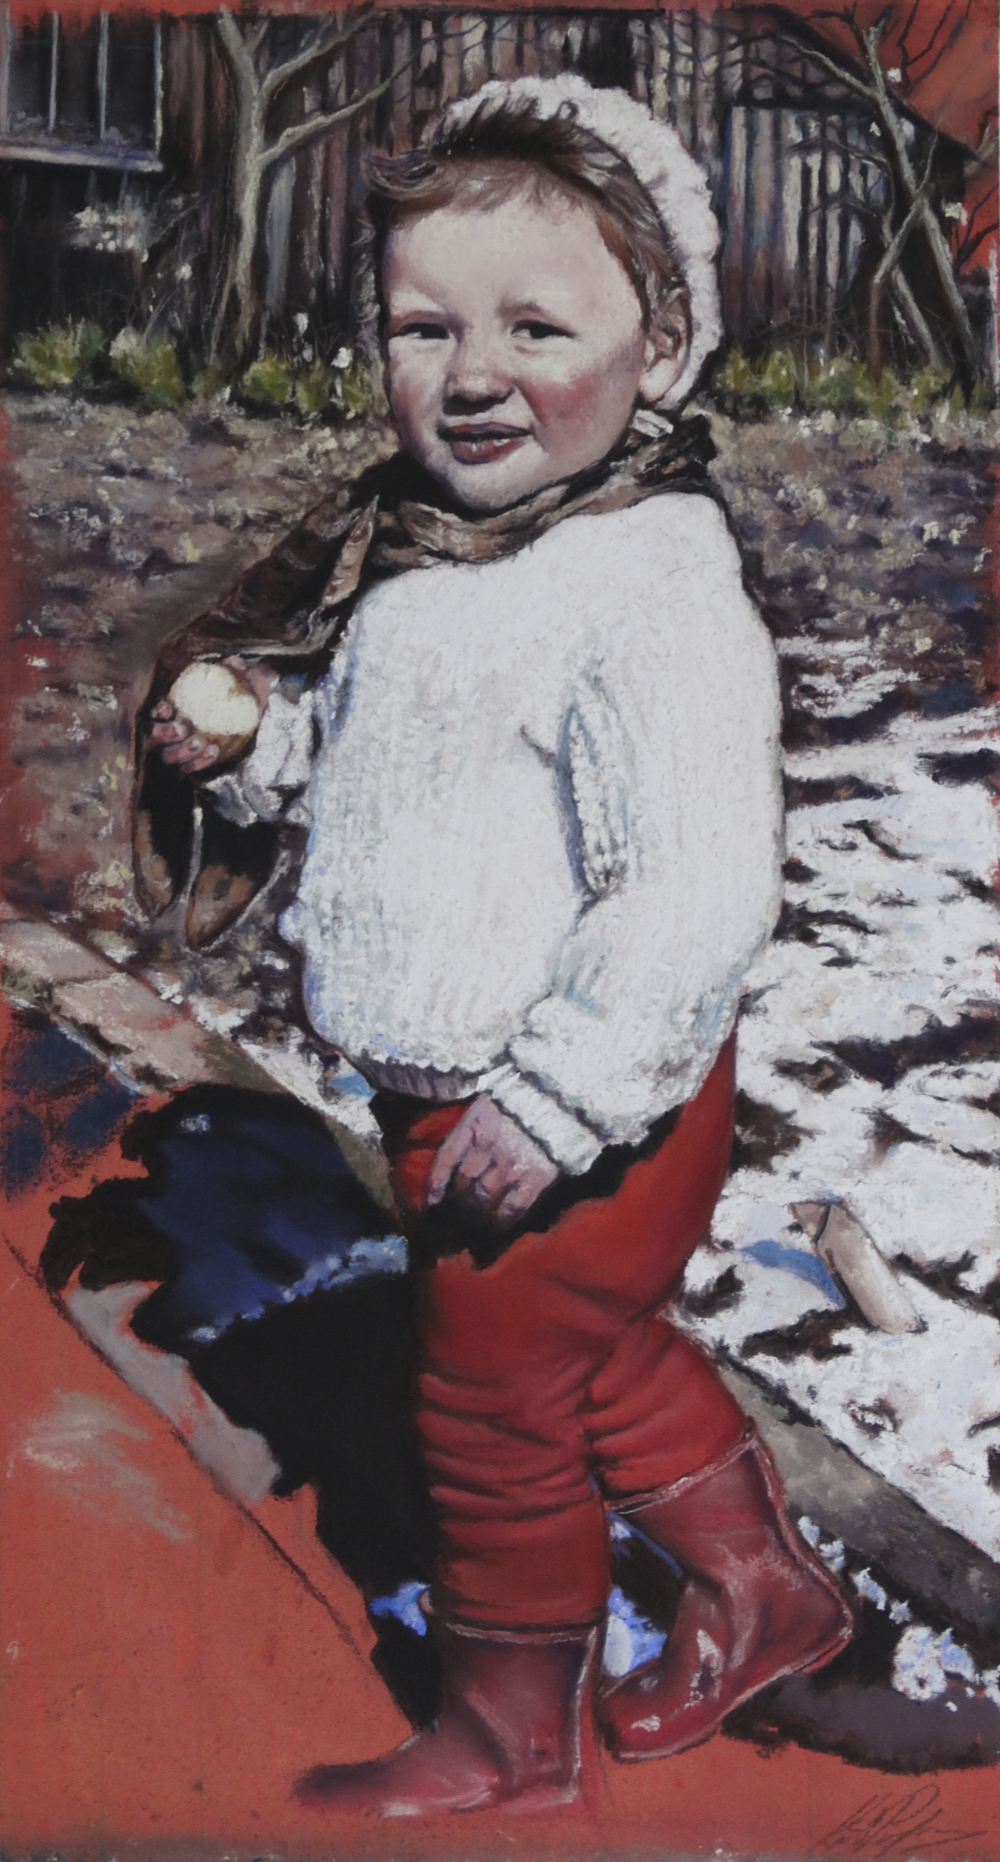 Kate Passingham, The Red Boots, Pastel & charcoal on board, 55cm x 34cm x 3cm,  http://www.katepassingham.co.uk/